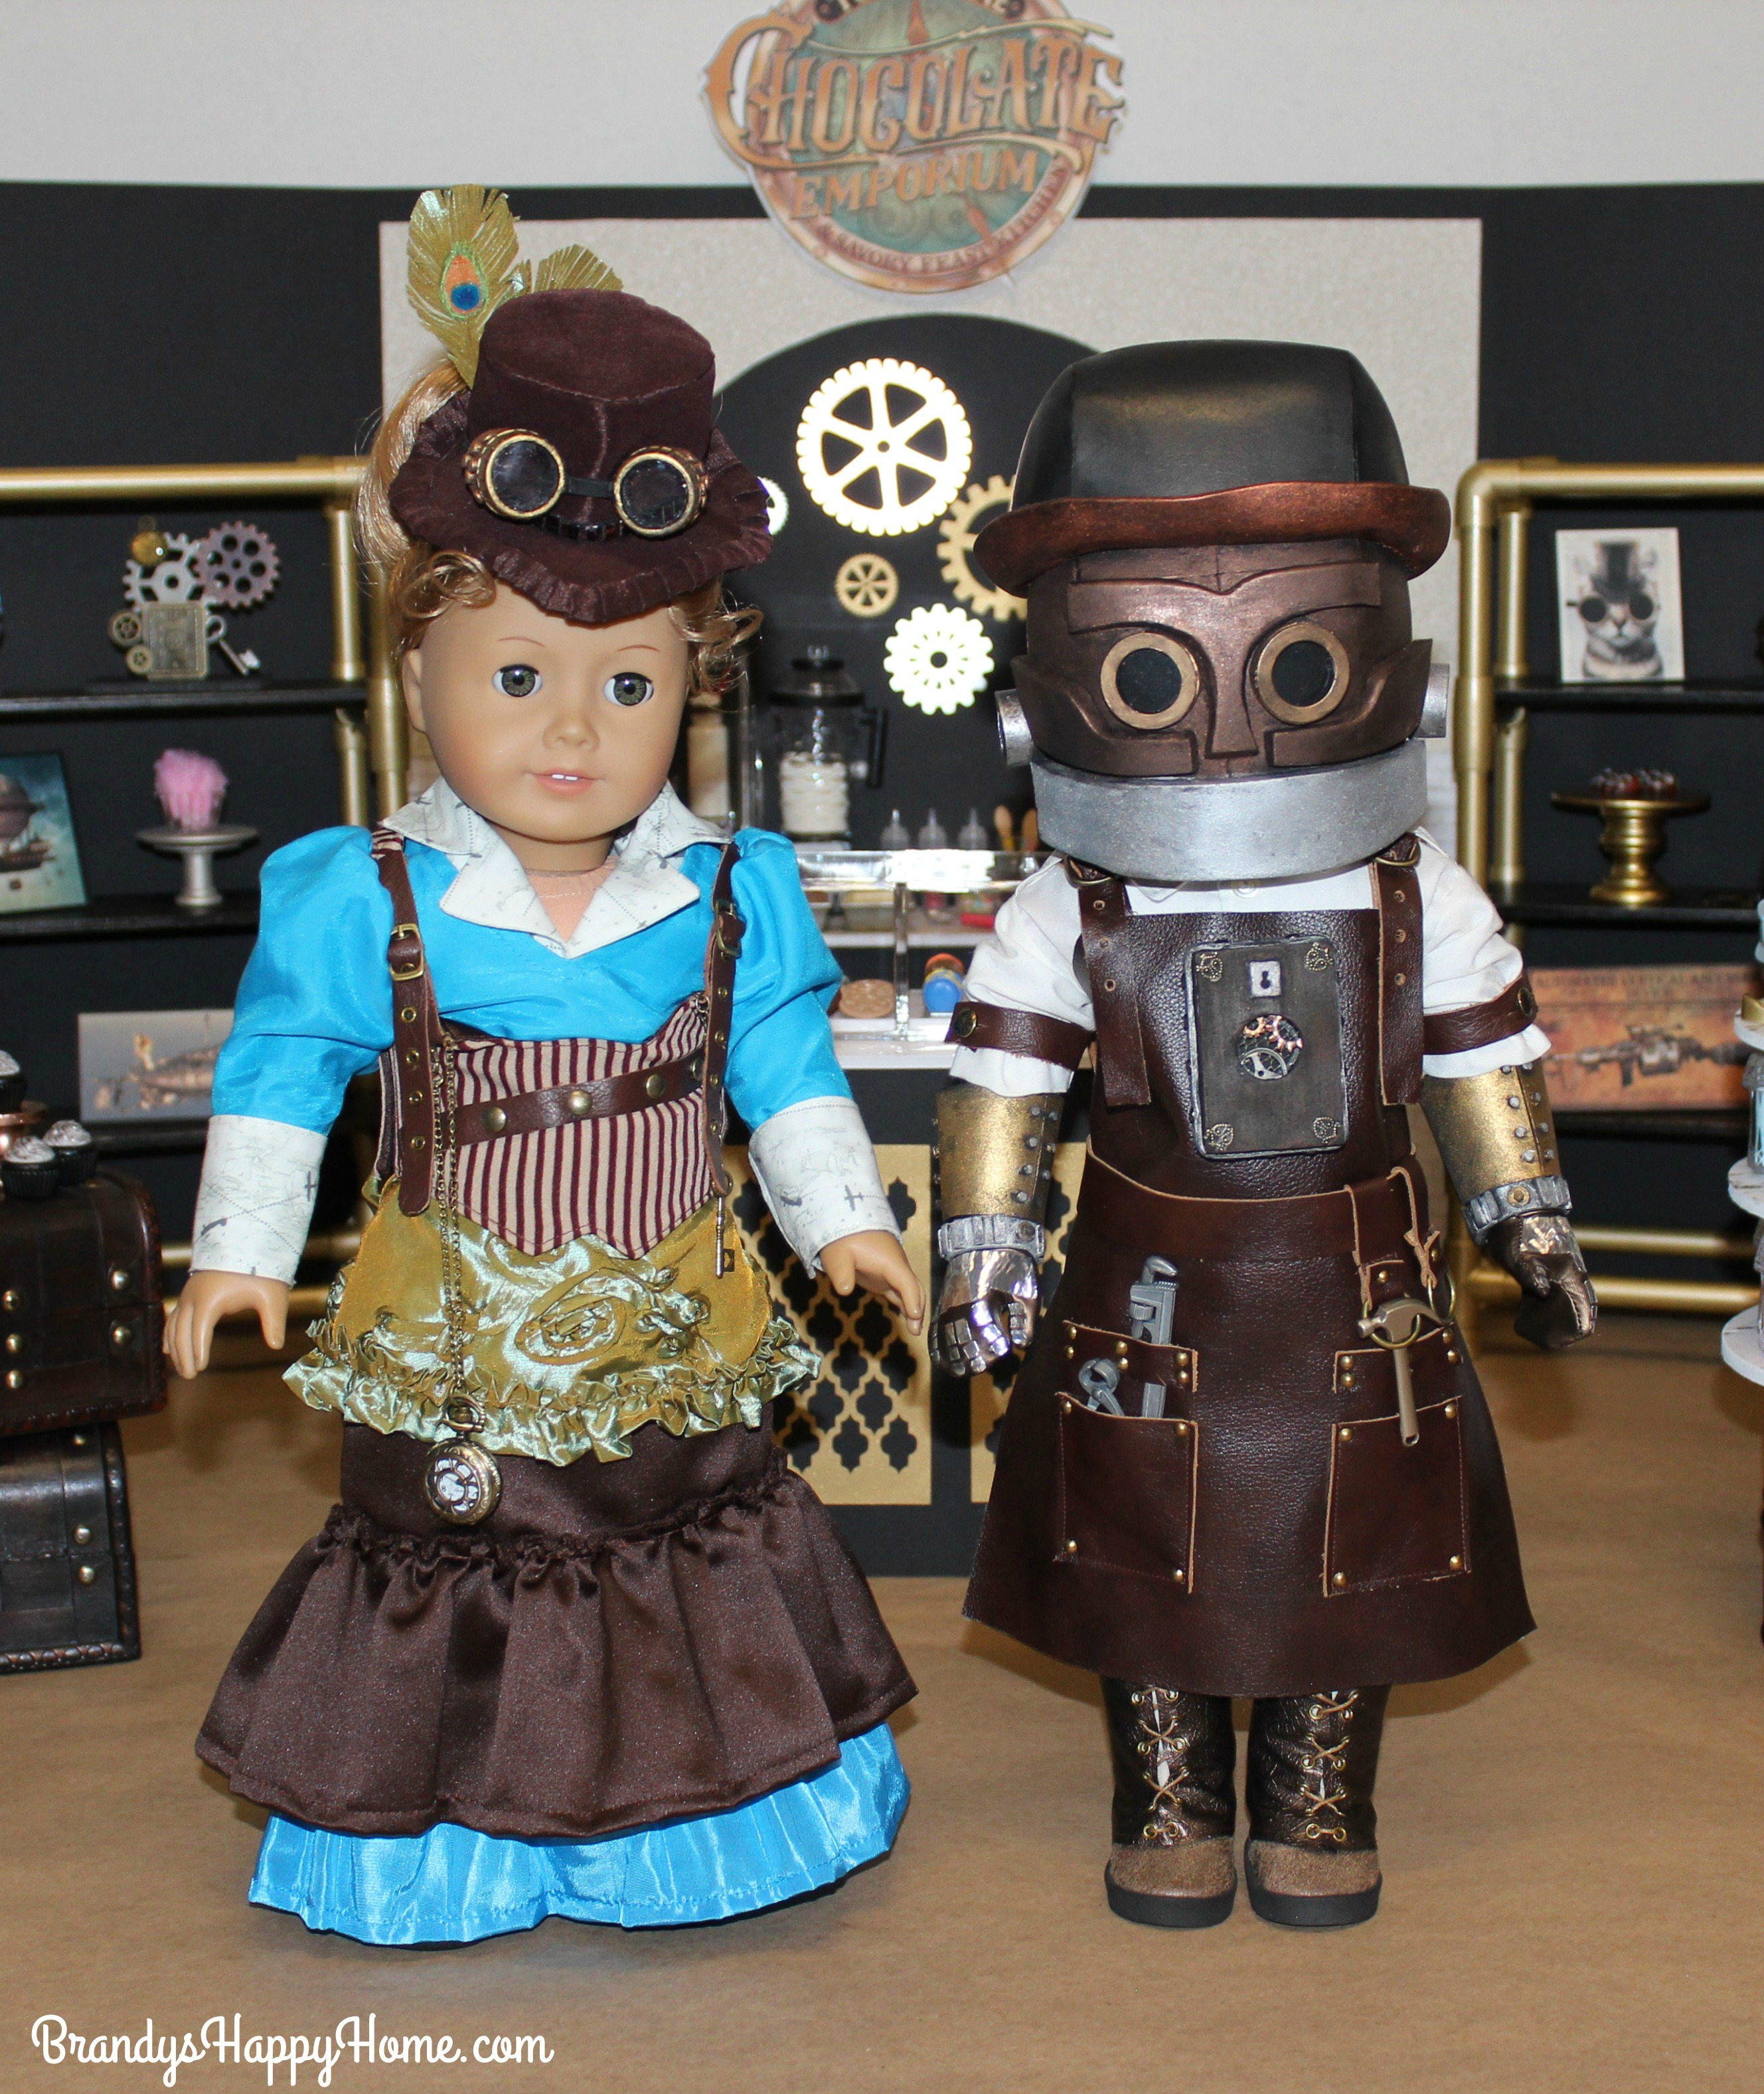 Meet Penelope & Jacques From The Toothsome Chocolate Emporium